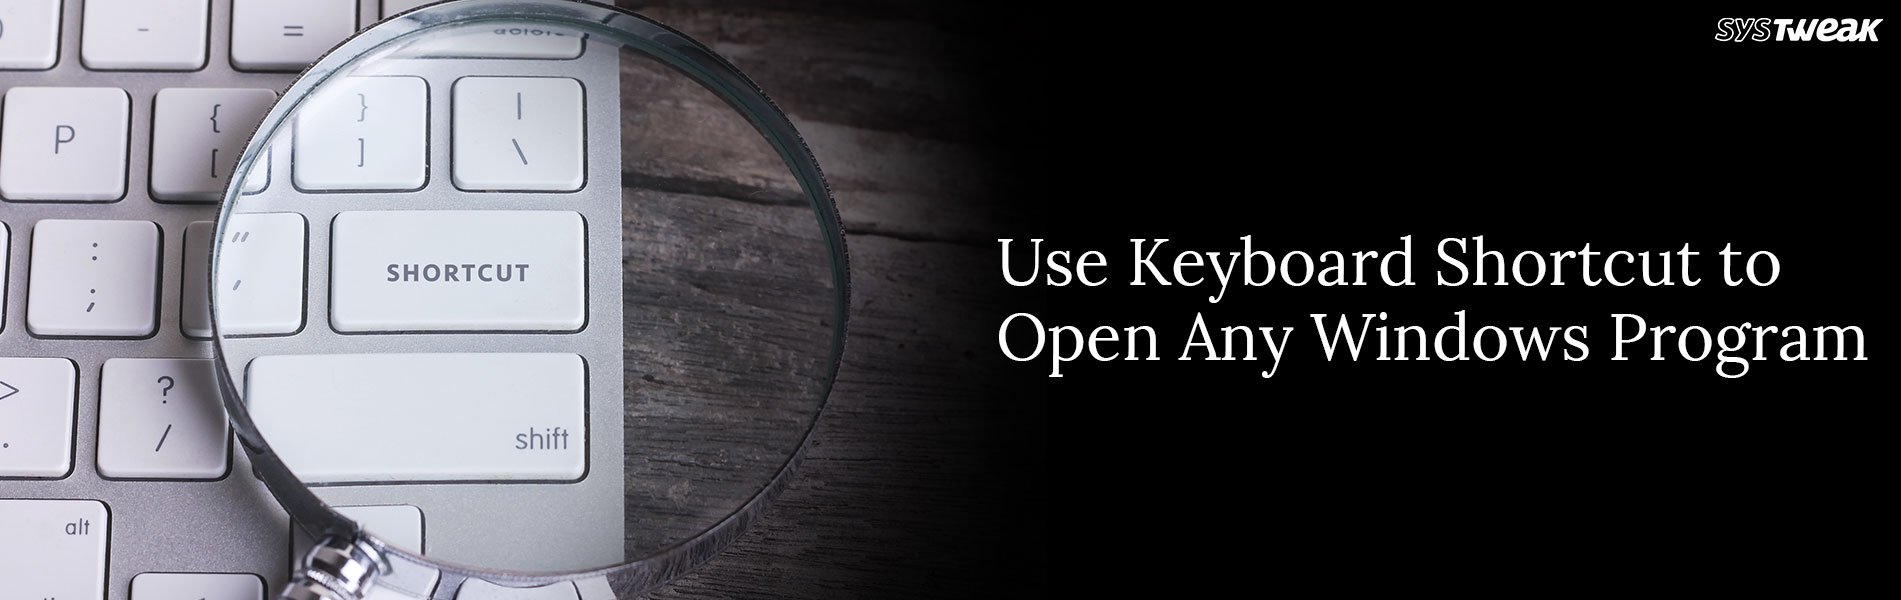 Use Keyboard Shortcuts to Open Any Windows Program